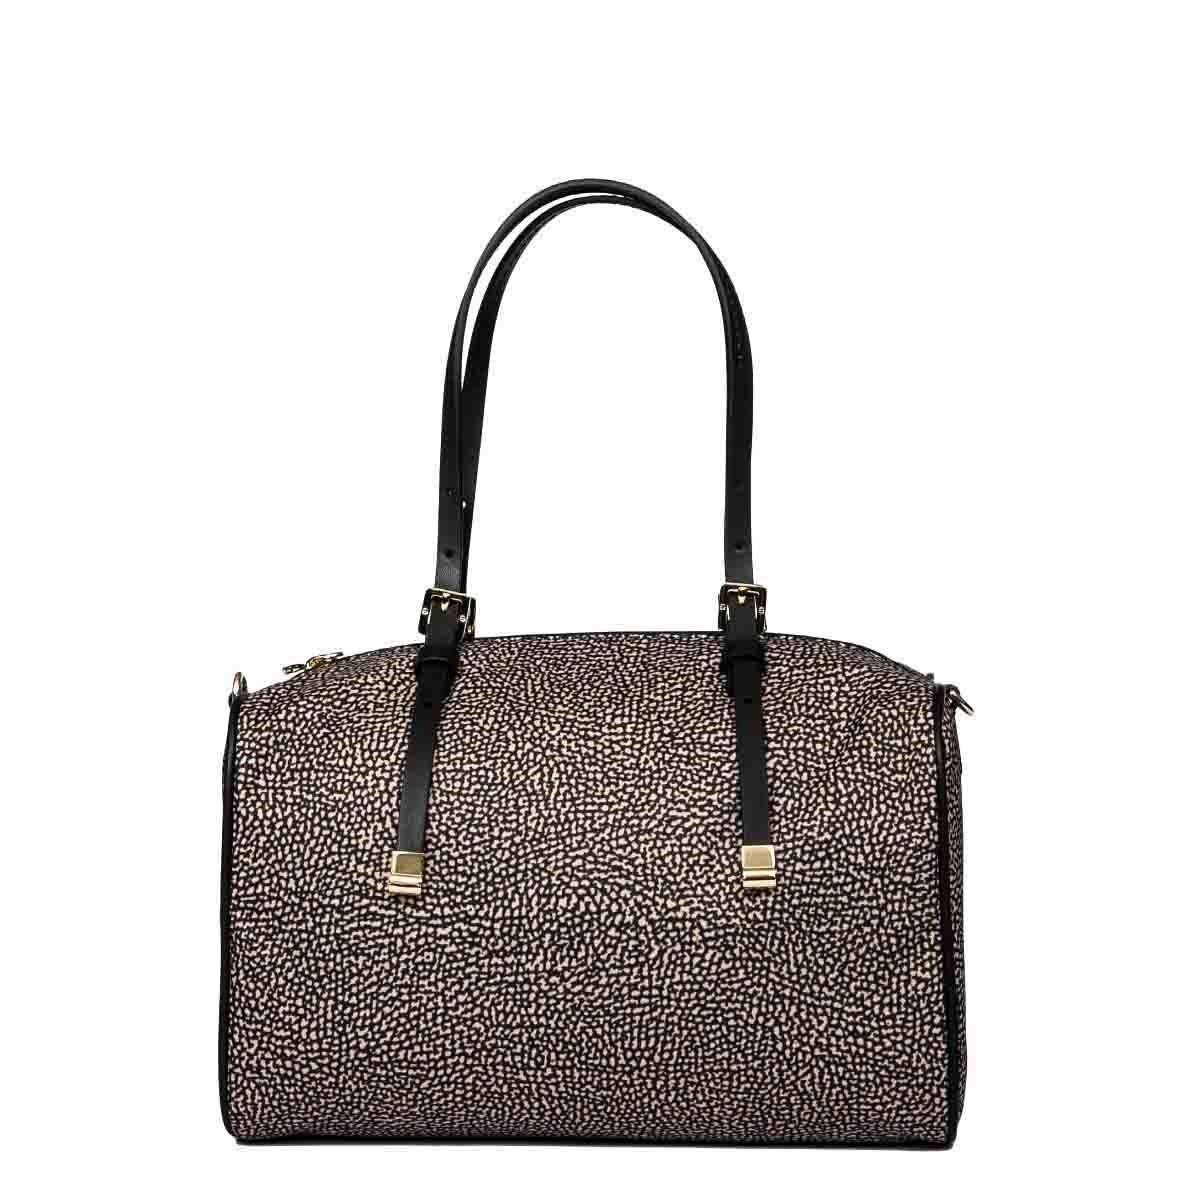 Borbonese Handbags BORBONESE WOMEN'S 934062I15X11 BROWN POLYESTER HANDBAG